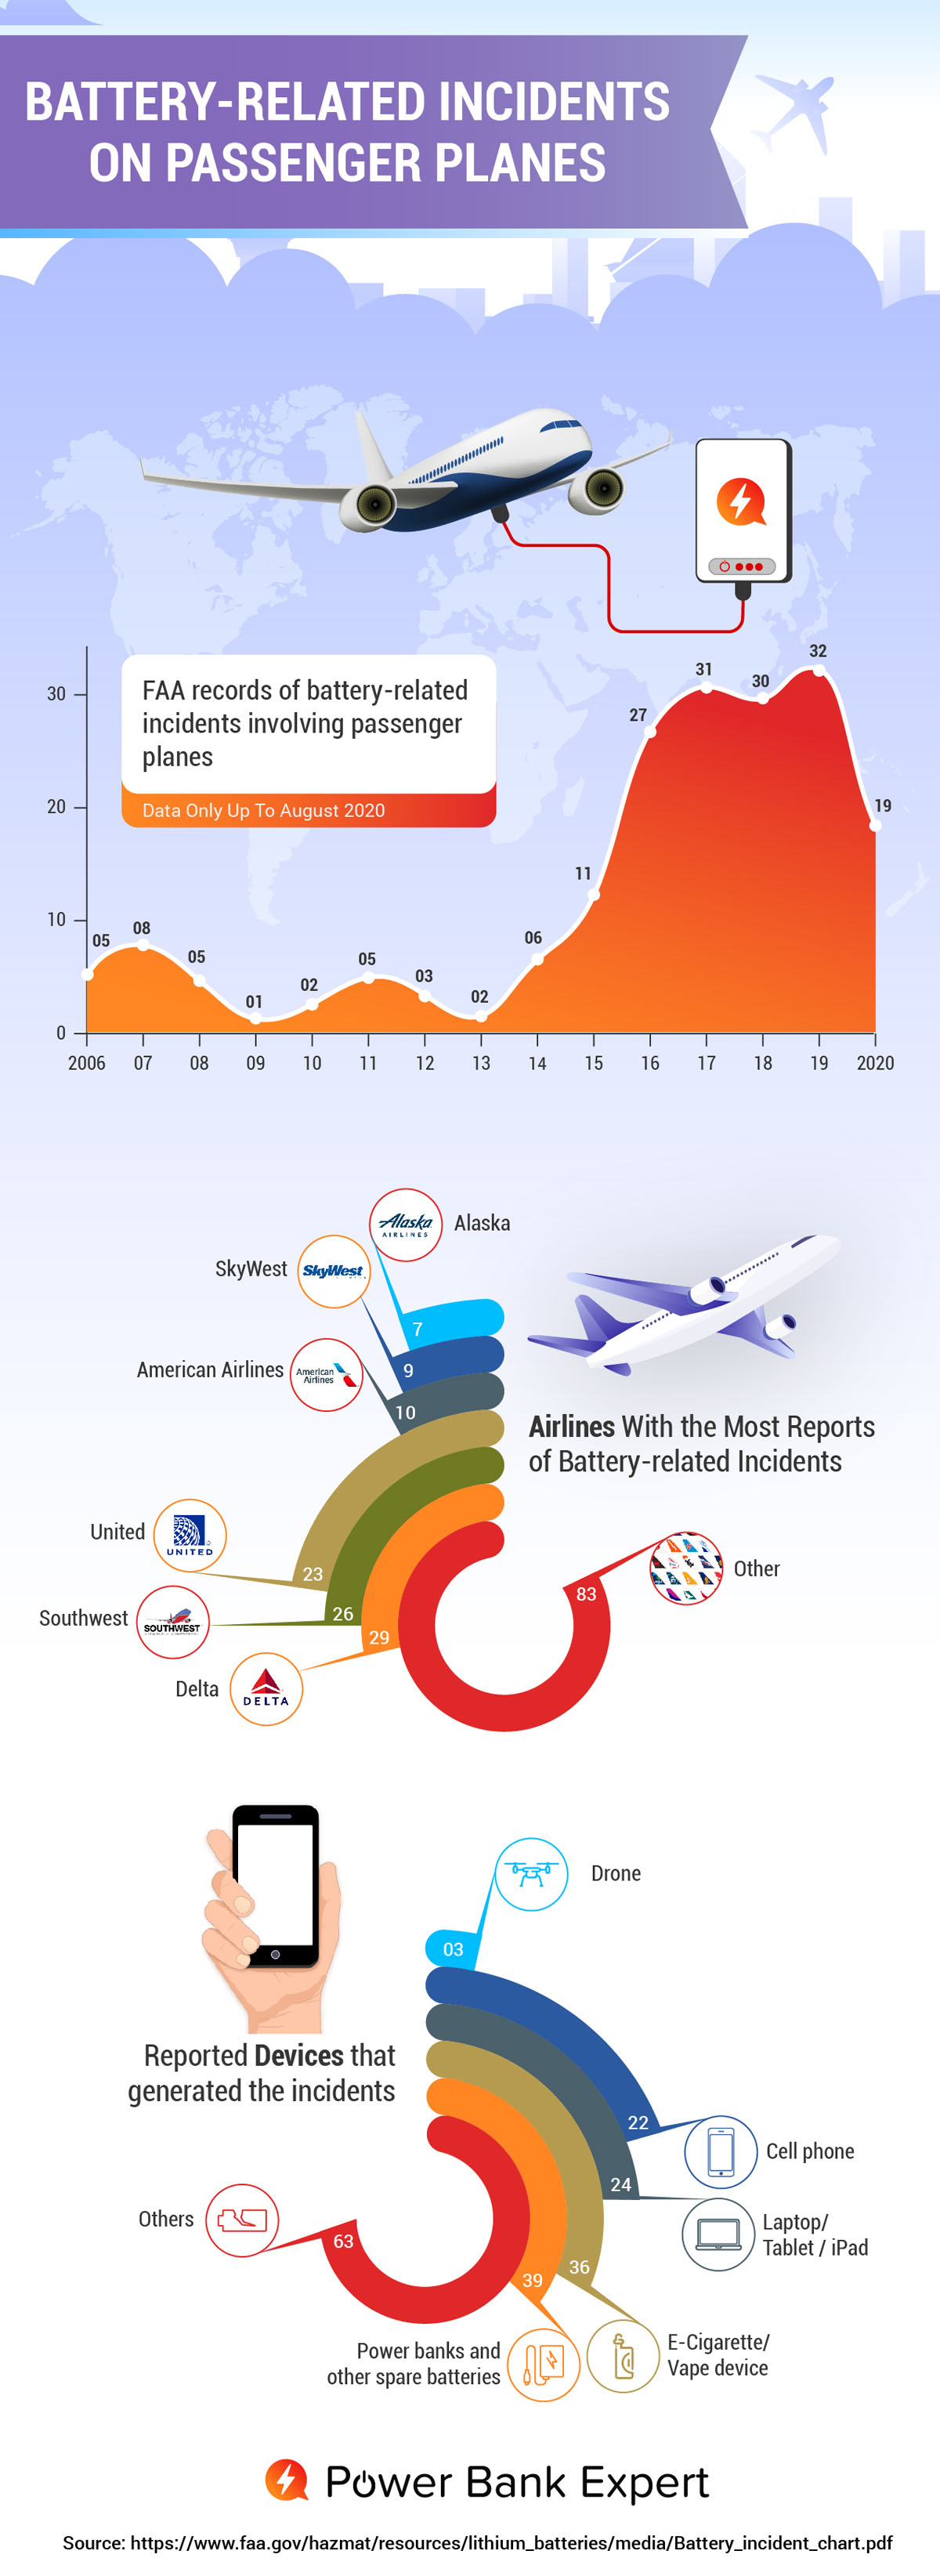 Evolution of Battery-Related Incidents on Passenger Planes